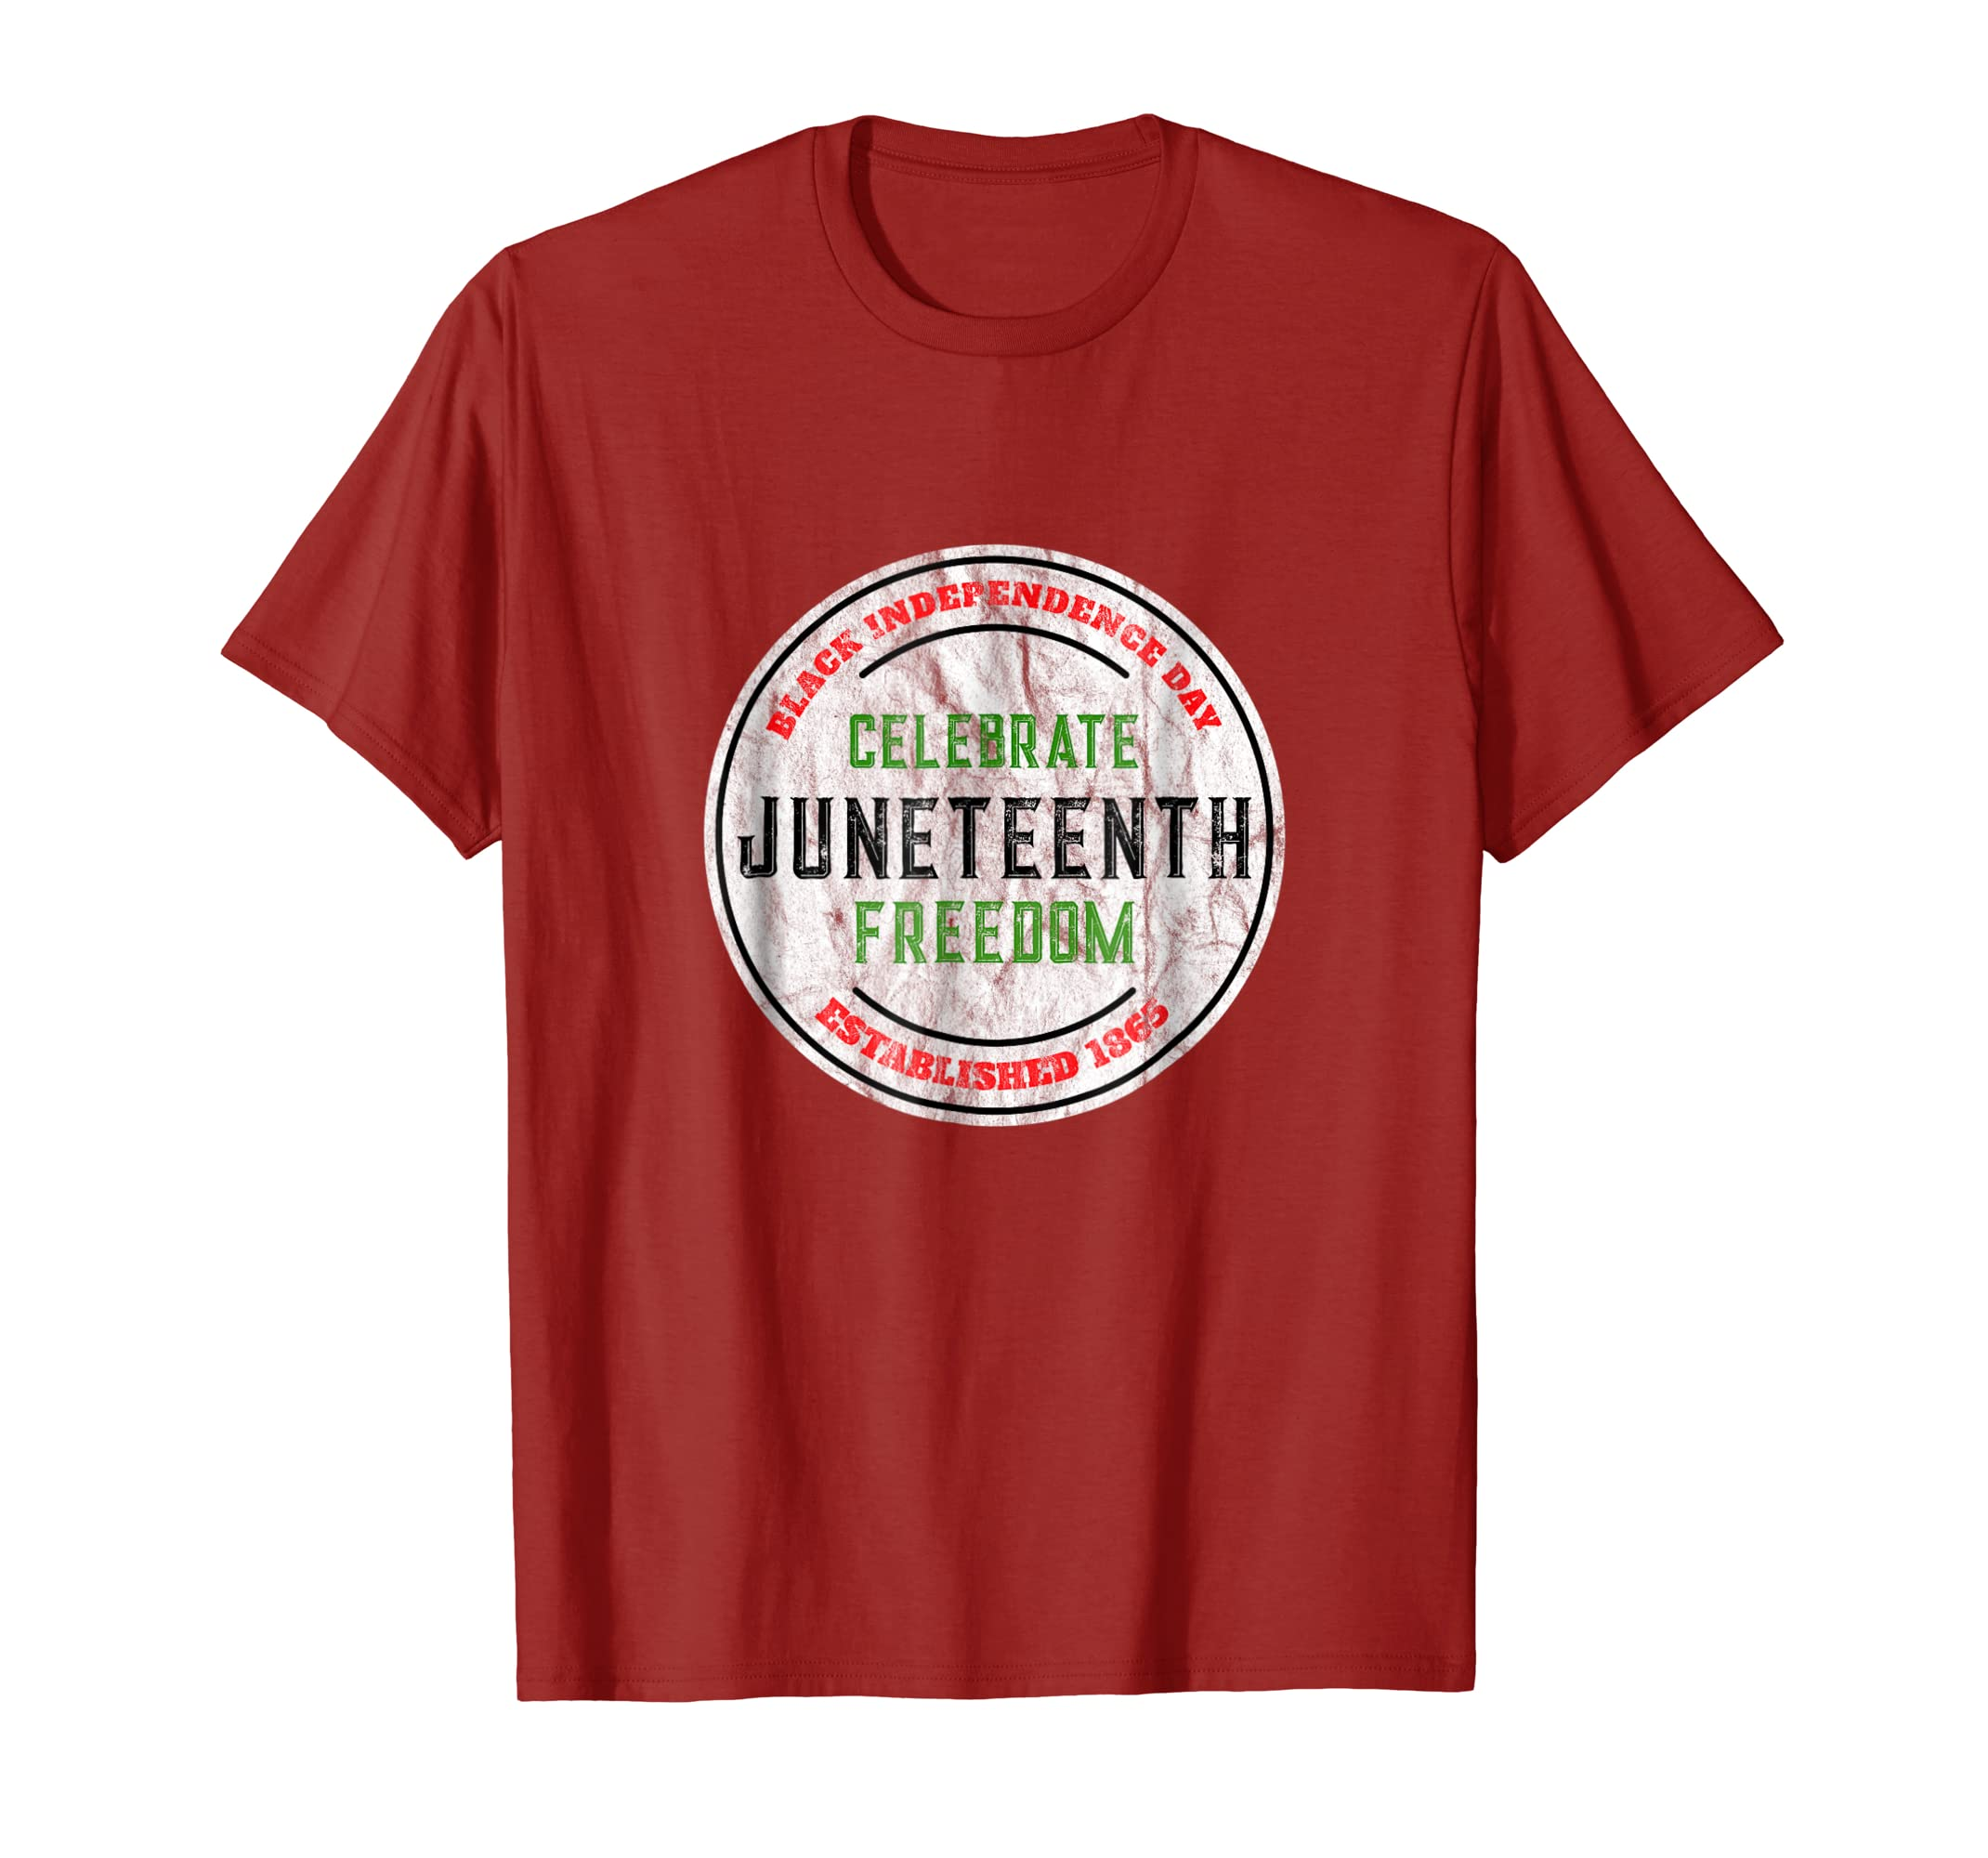 Juneteenth Tshirt Celebrate Black Independence Freedom Shirt-SFL